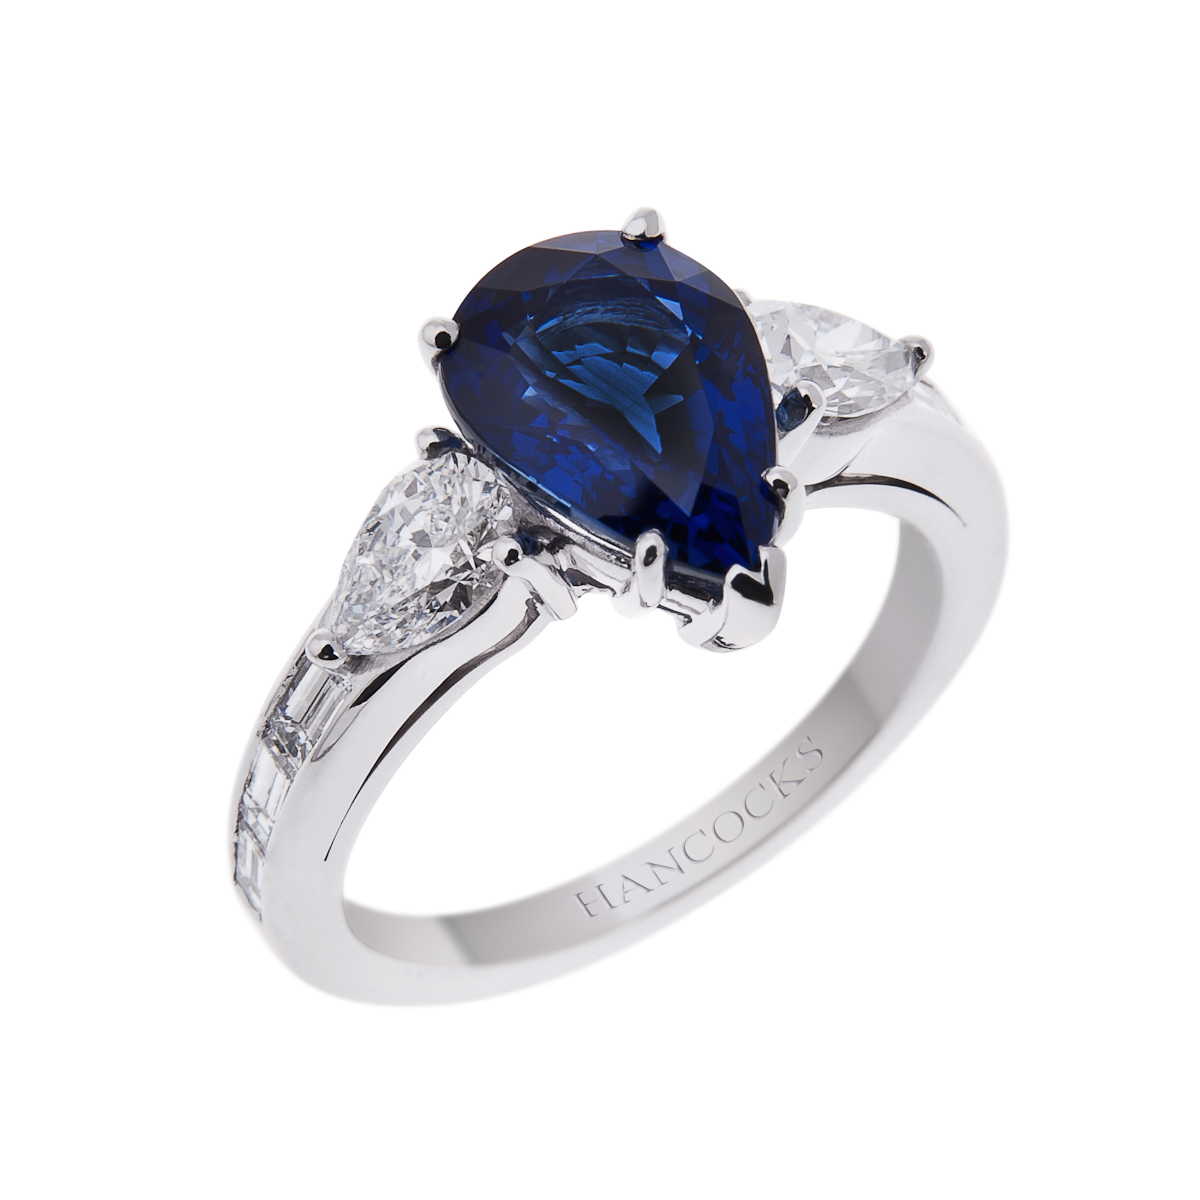 Pear Cut Sapphire Solitaire With Diamond Shoulders